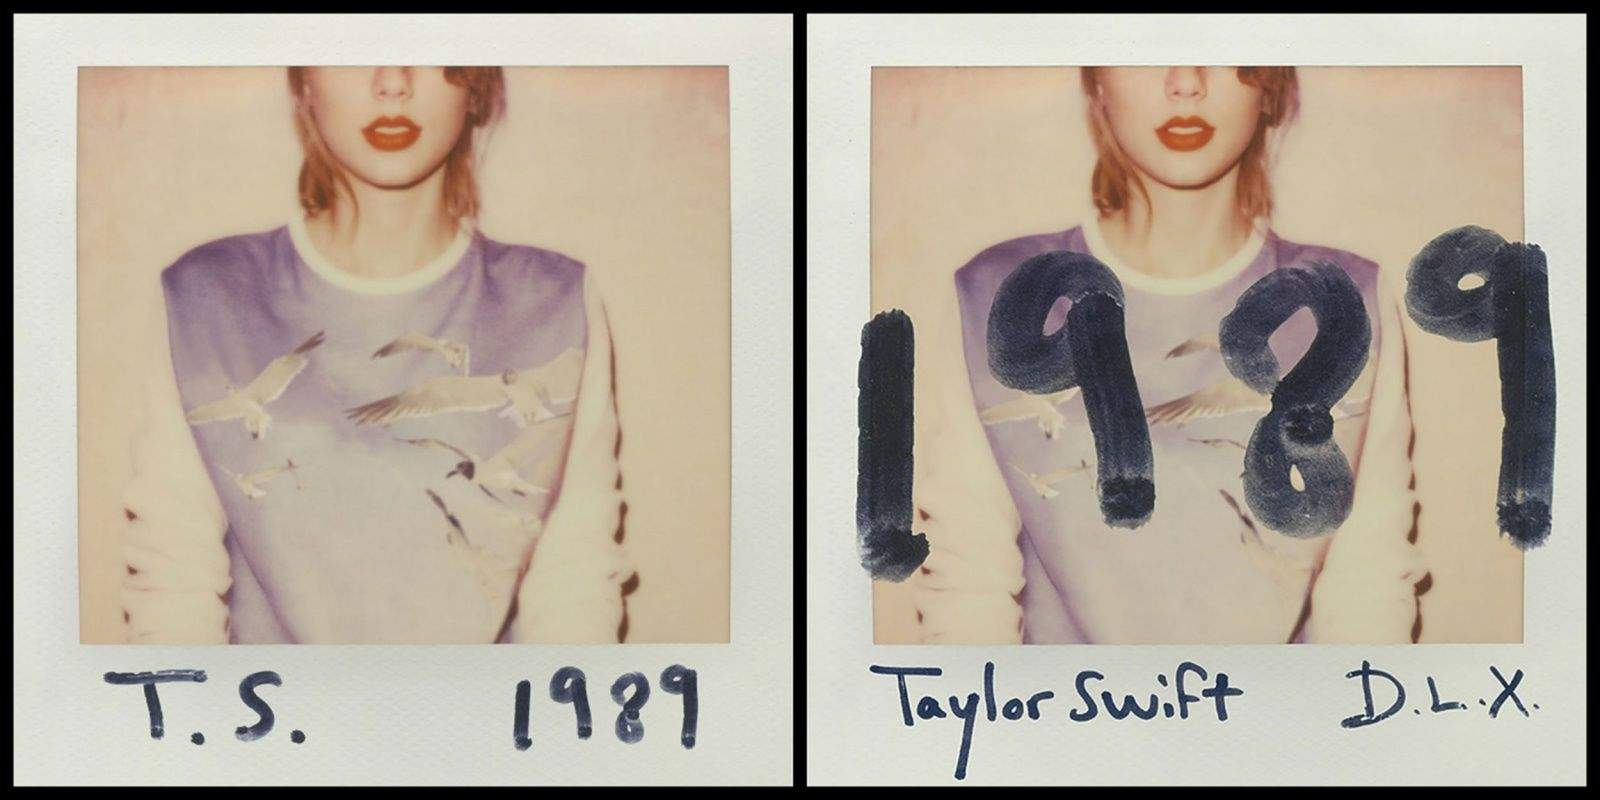 Taylor_Swift_cover001